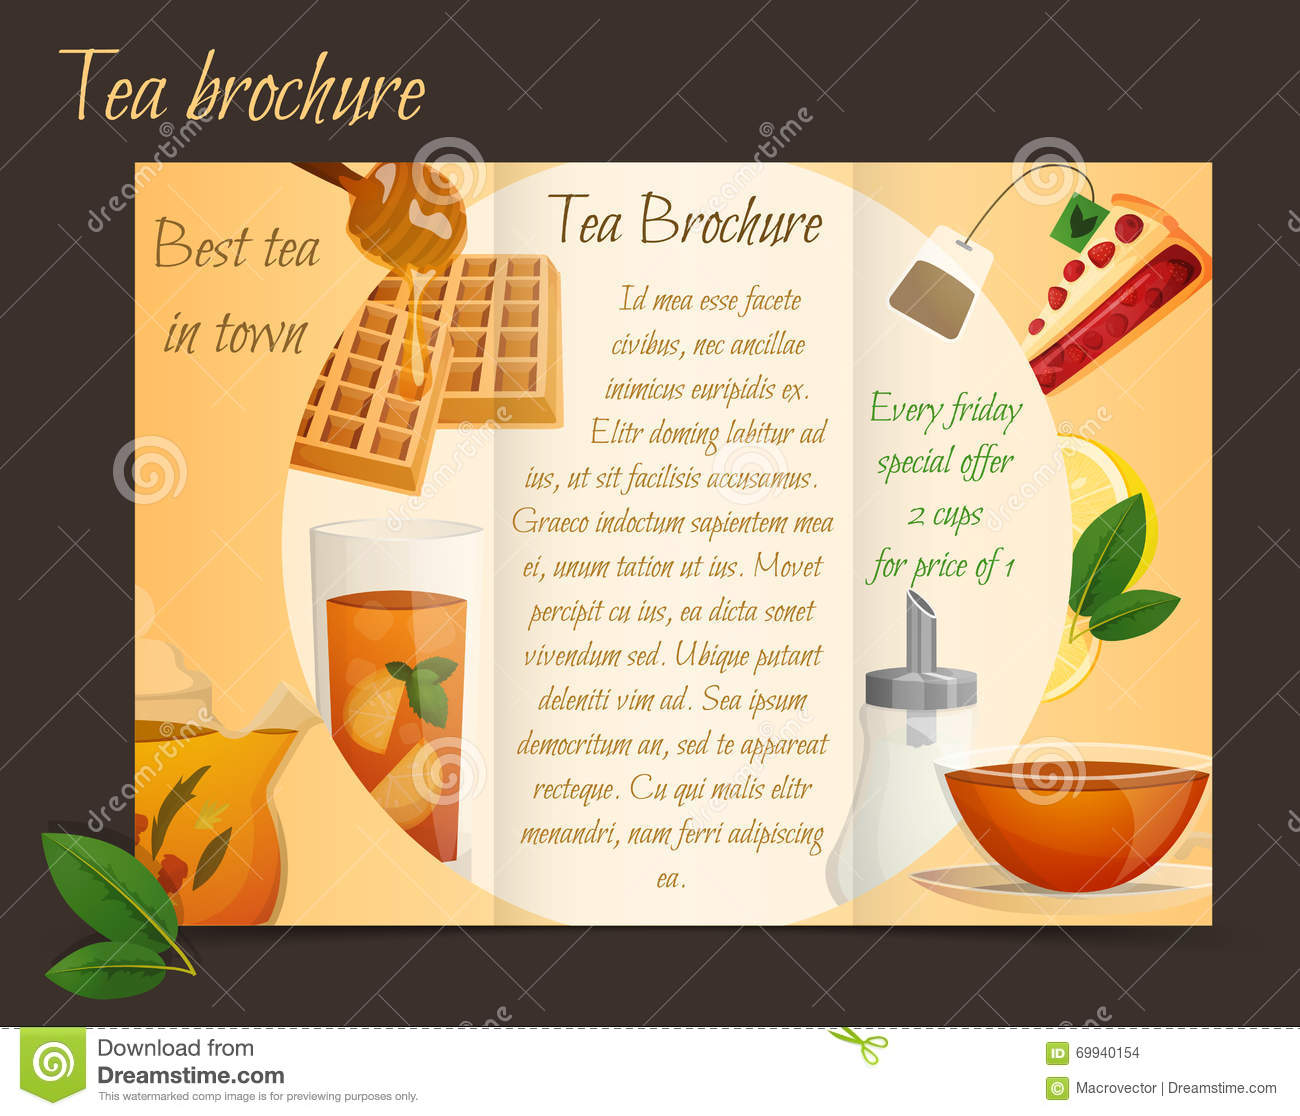 Tea Brochure Tri-fold Stock Vector - Image: 69940154